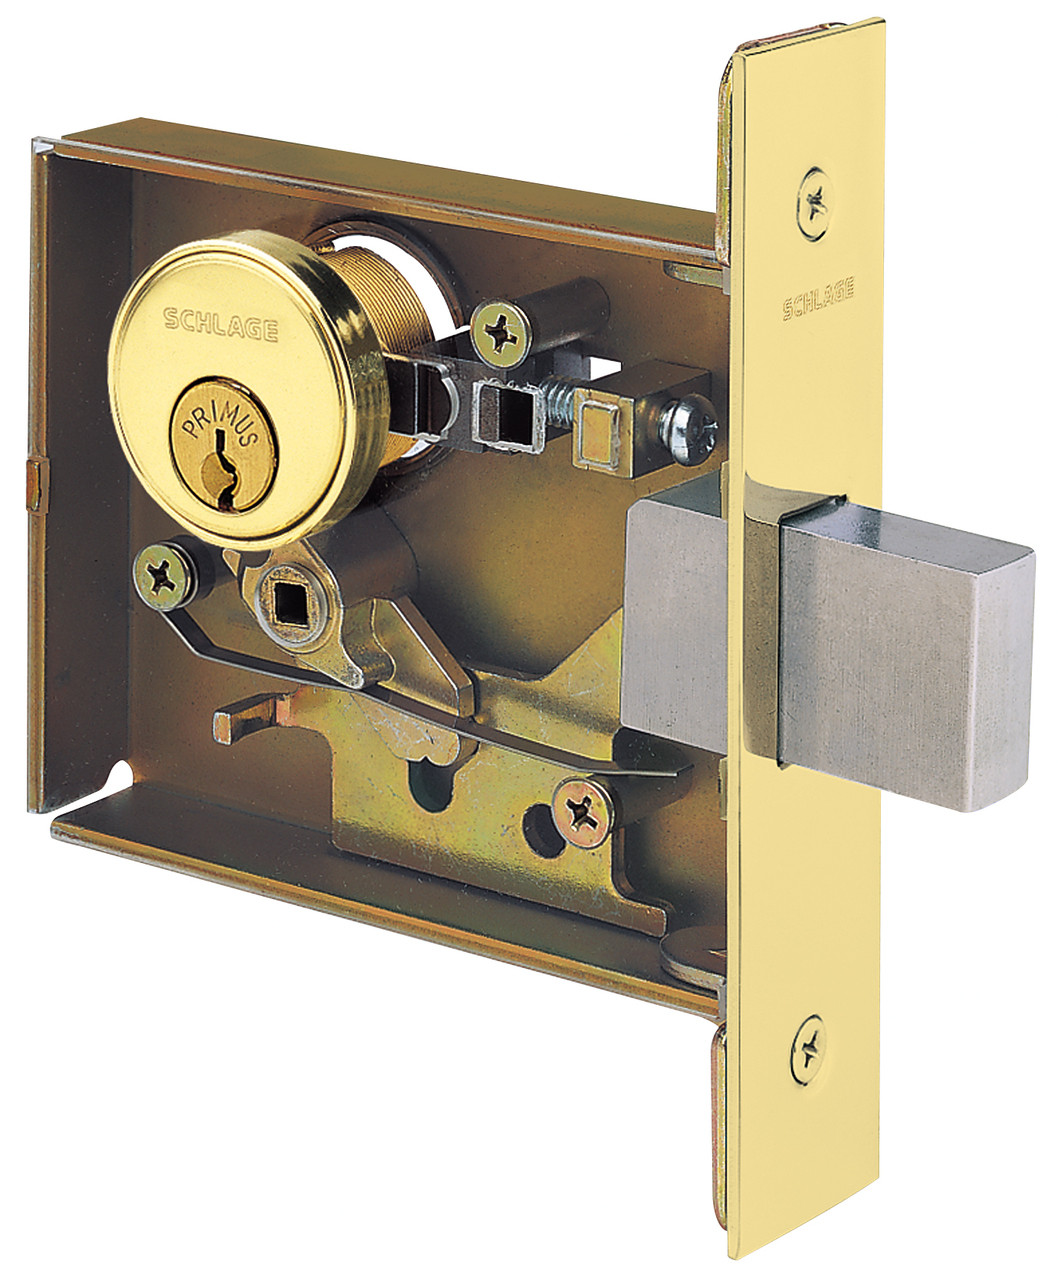 Schlage l series l400 grade 1 small mortise deadbolt locks for Schlage mortise lock template